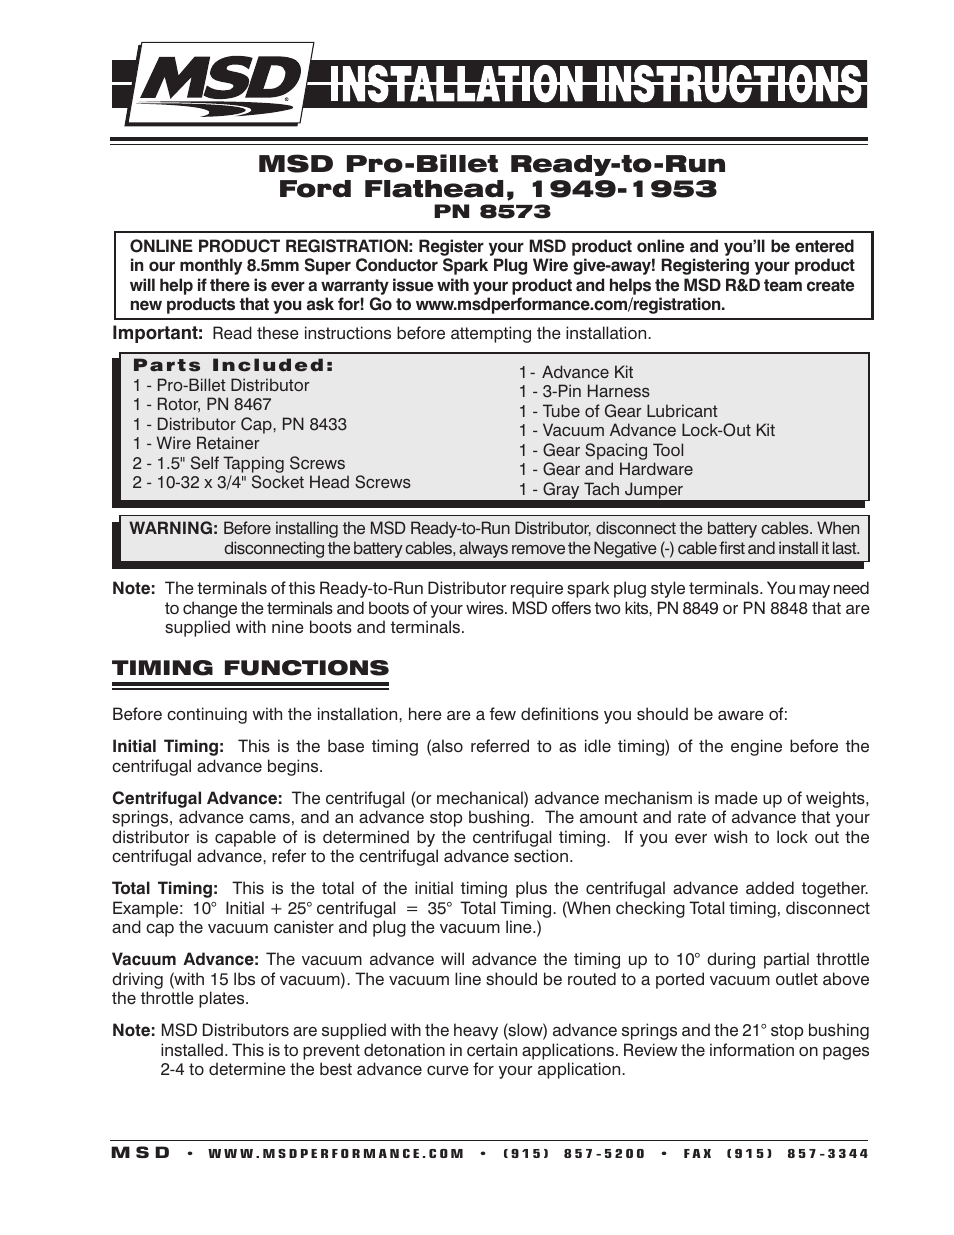 hight resolution of msd 8573 flathead ford ready to run distributor for 49 53 installation user manual 8 pages